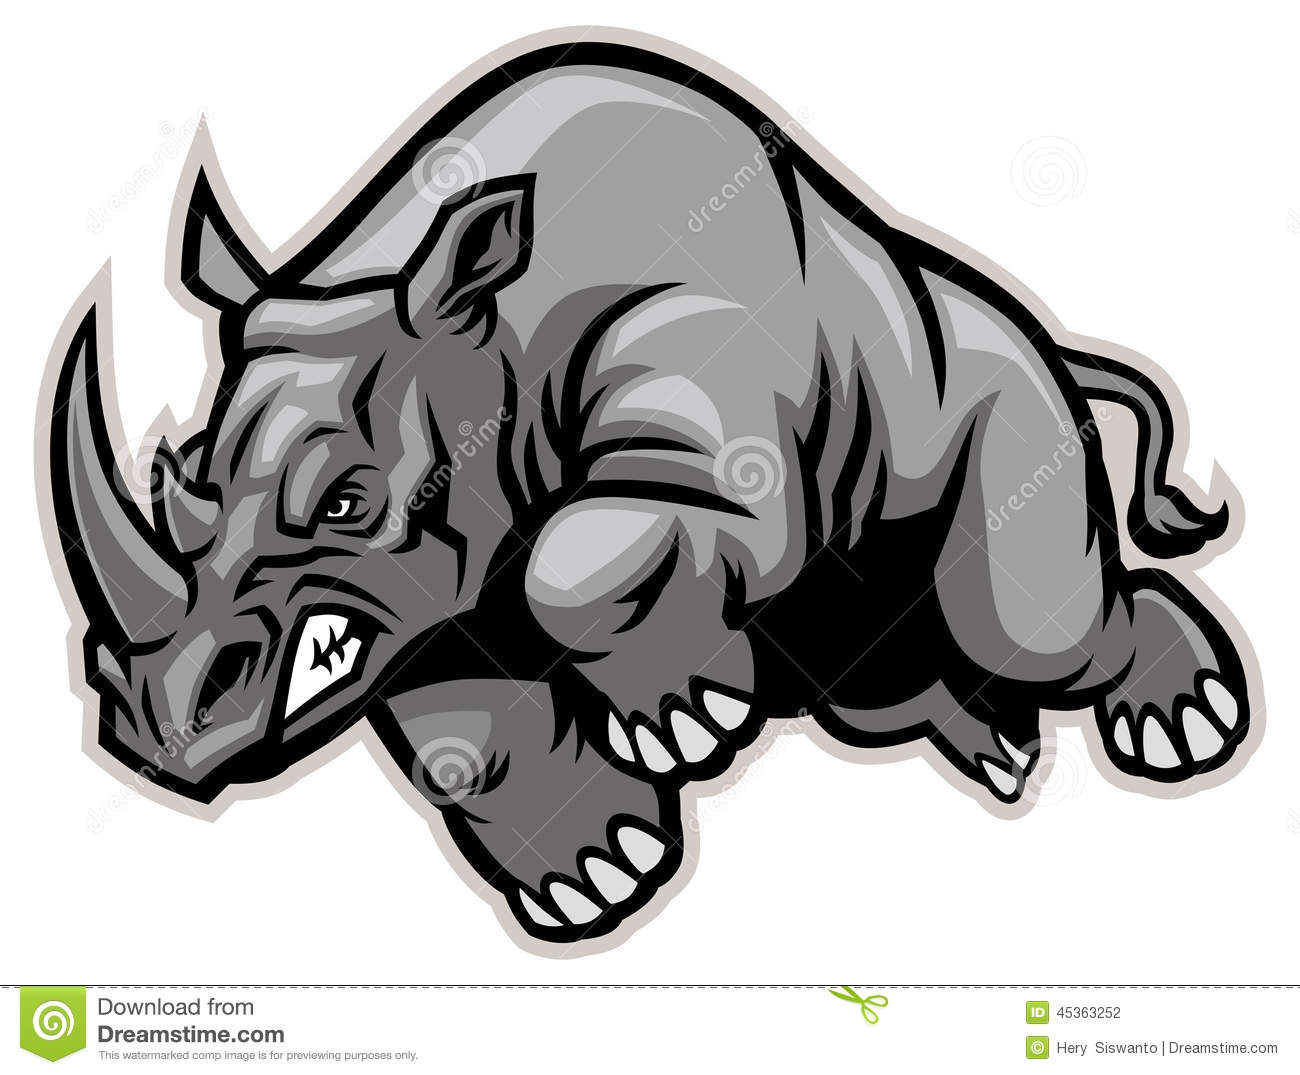 Charging Rhino clipart #20, Download drawings